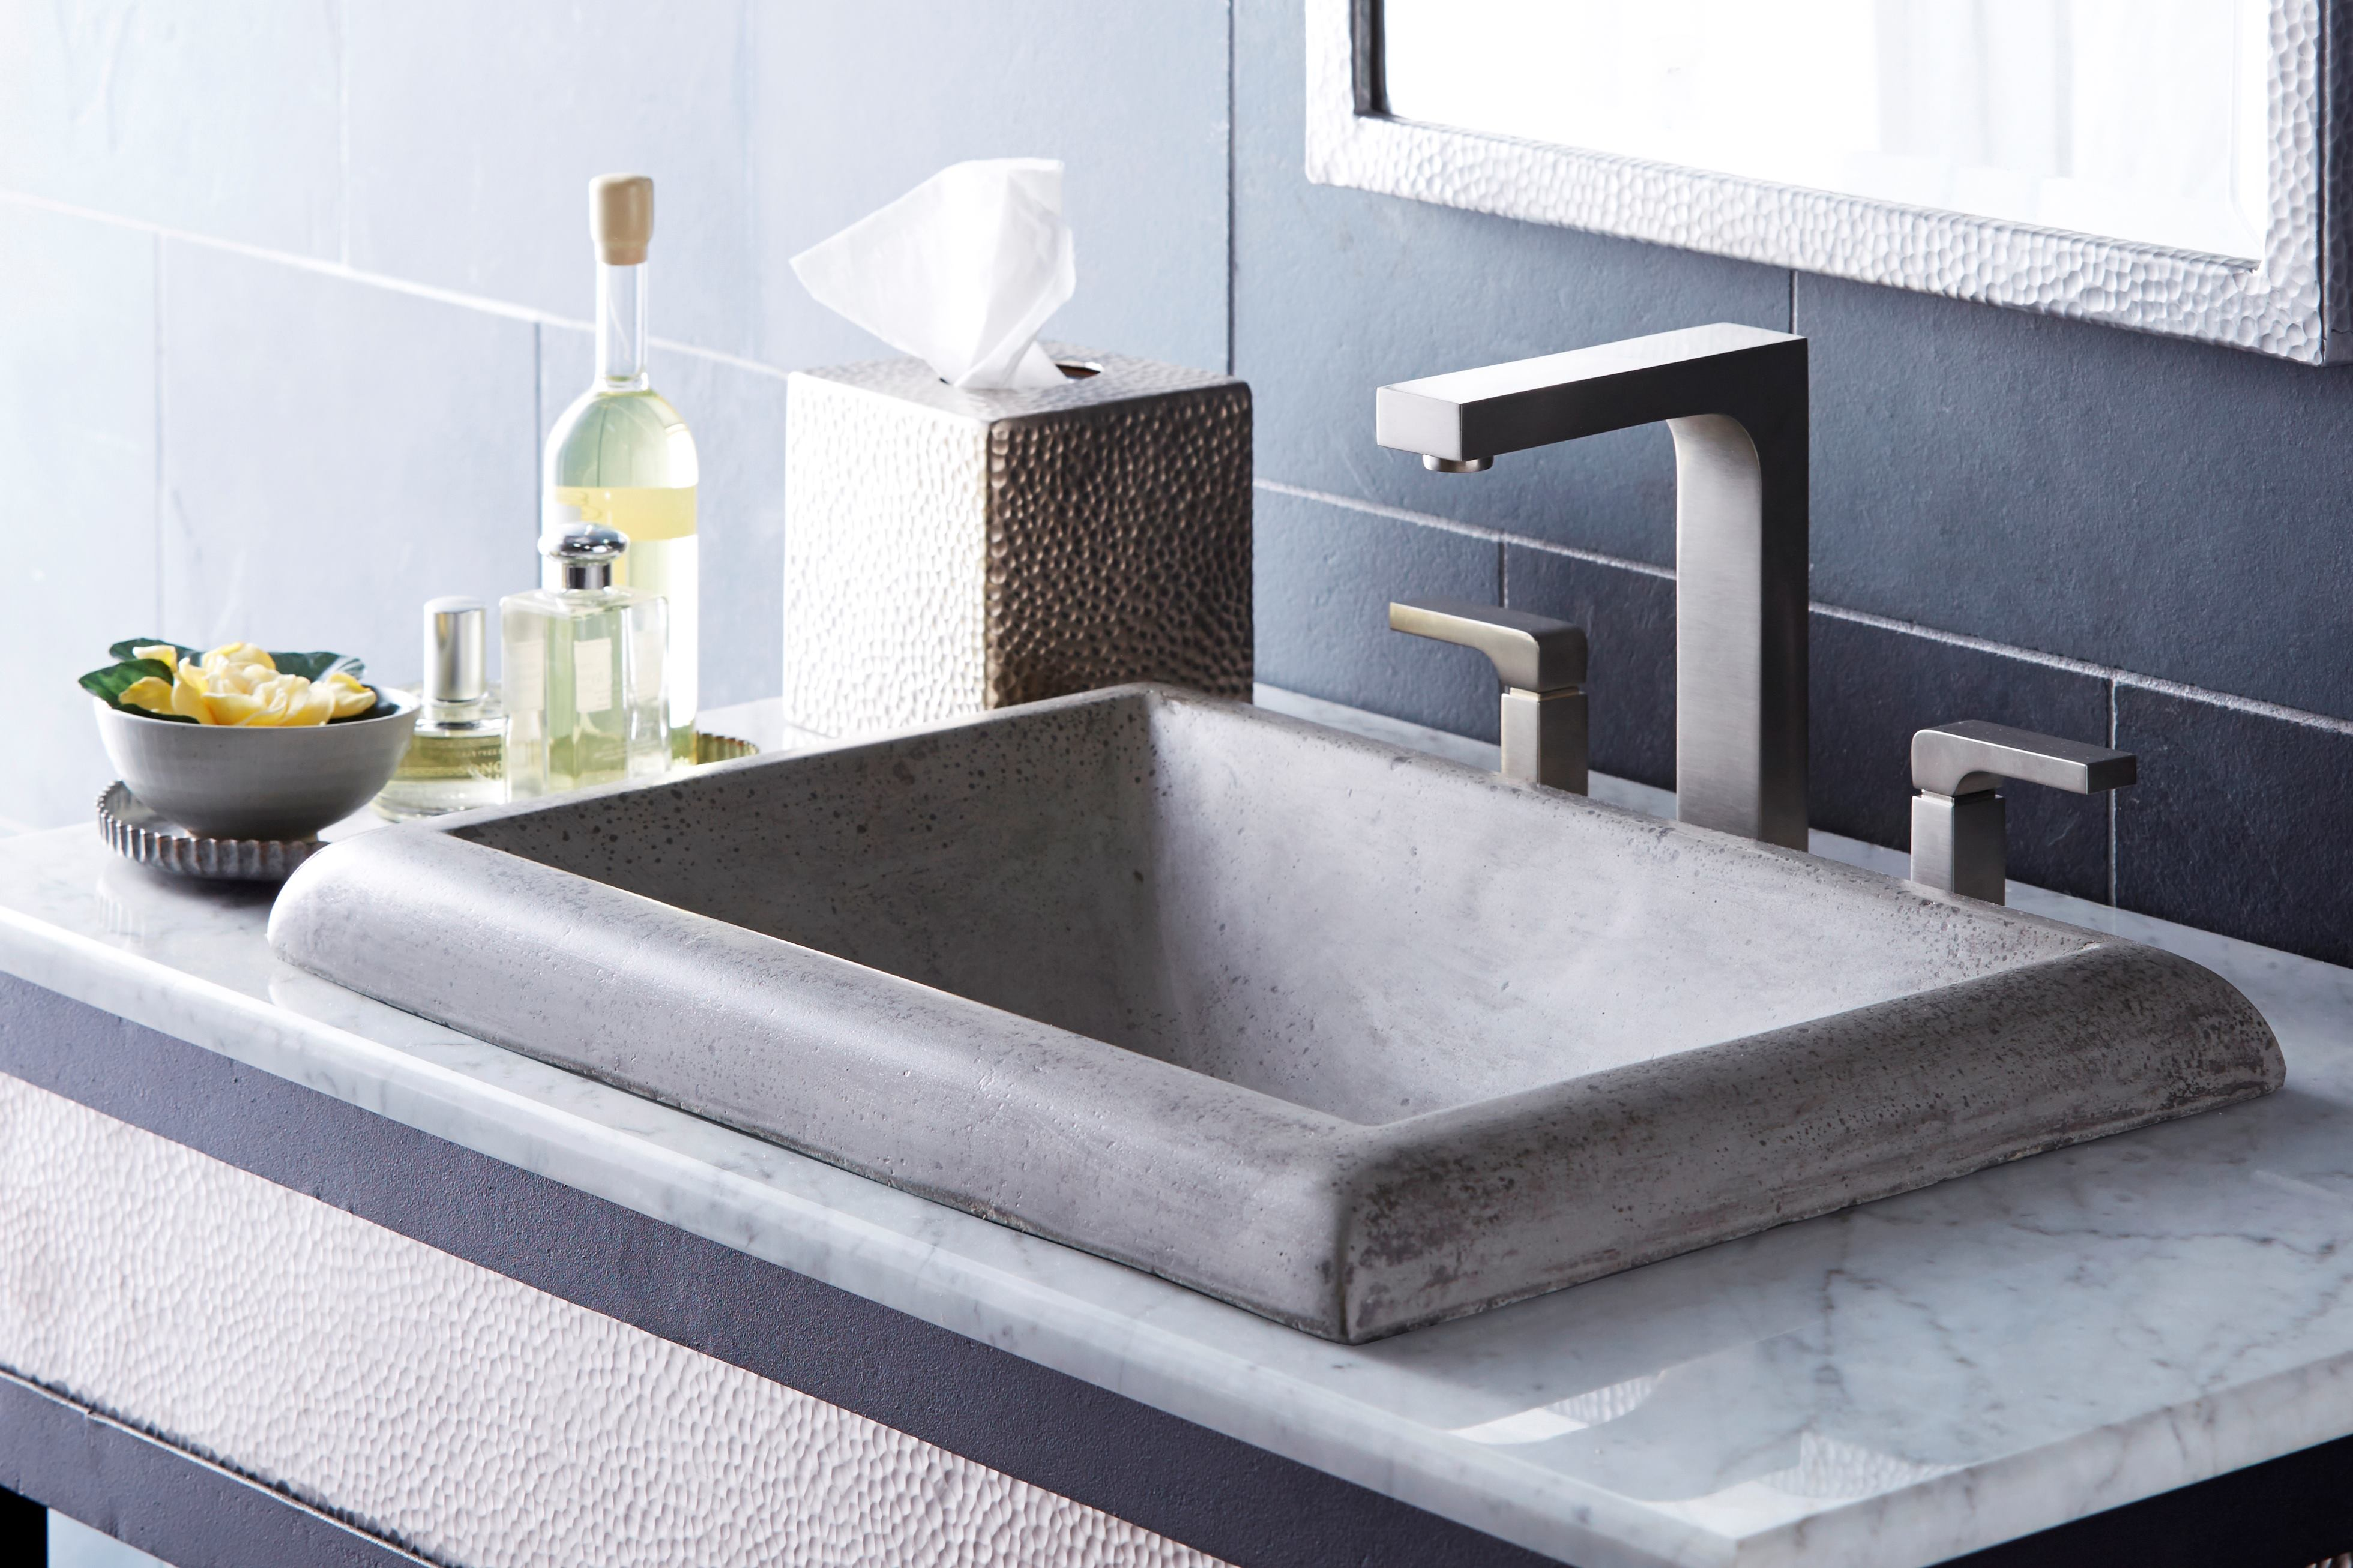 Nativestone Concrete Sinks Make A Weighty Statement